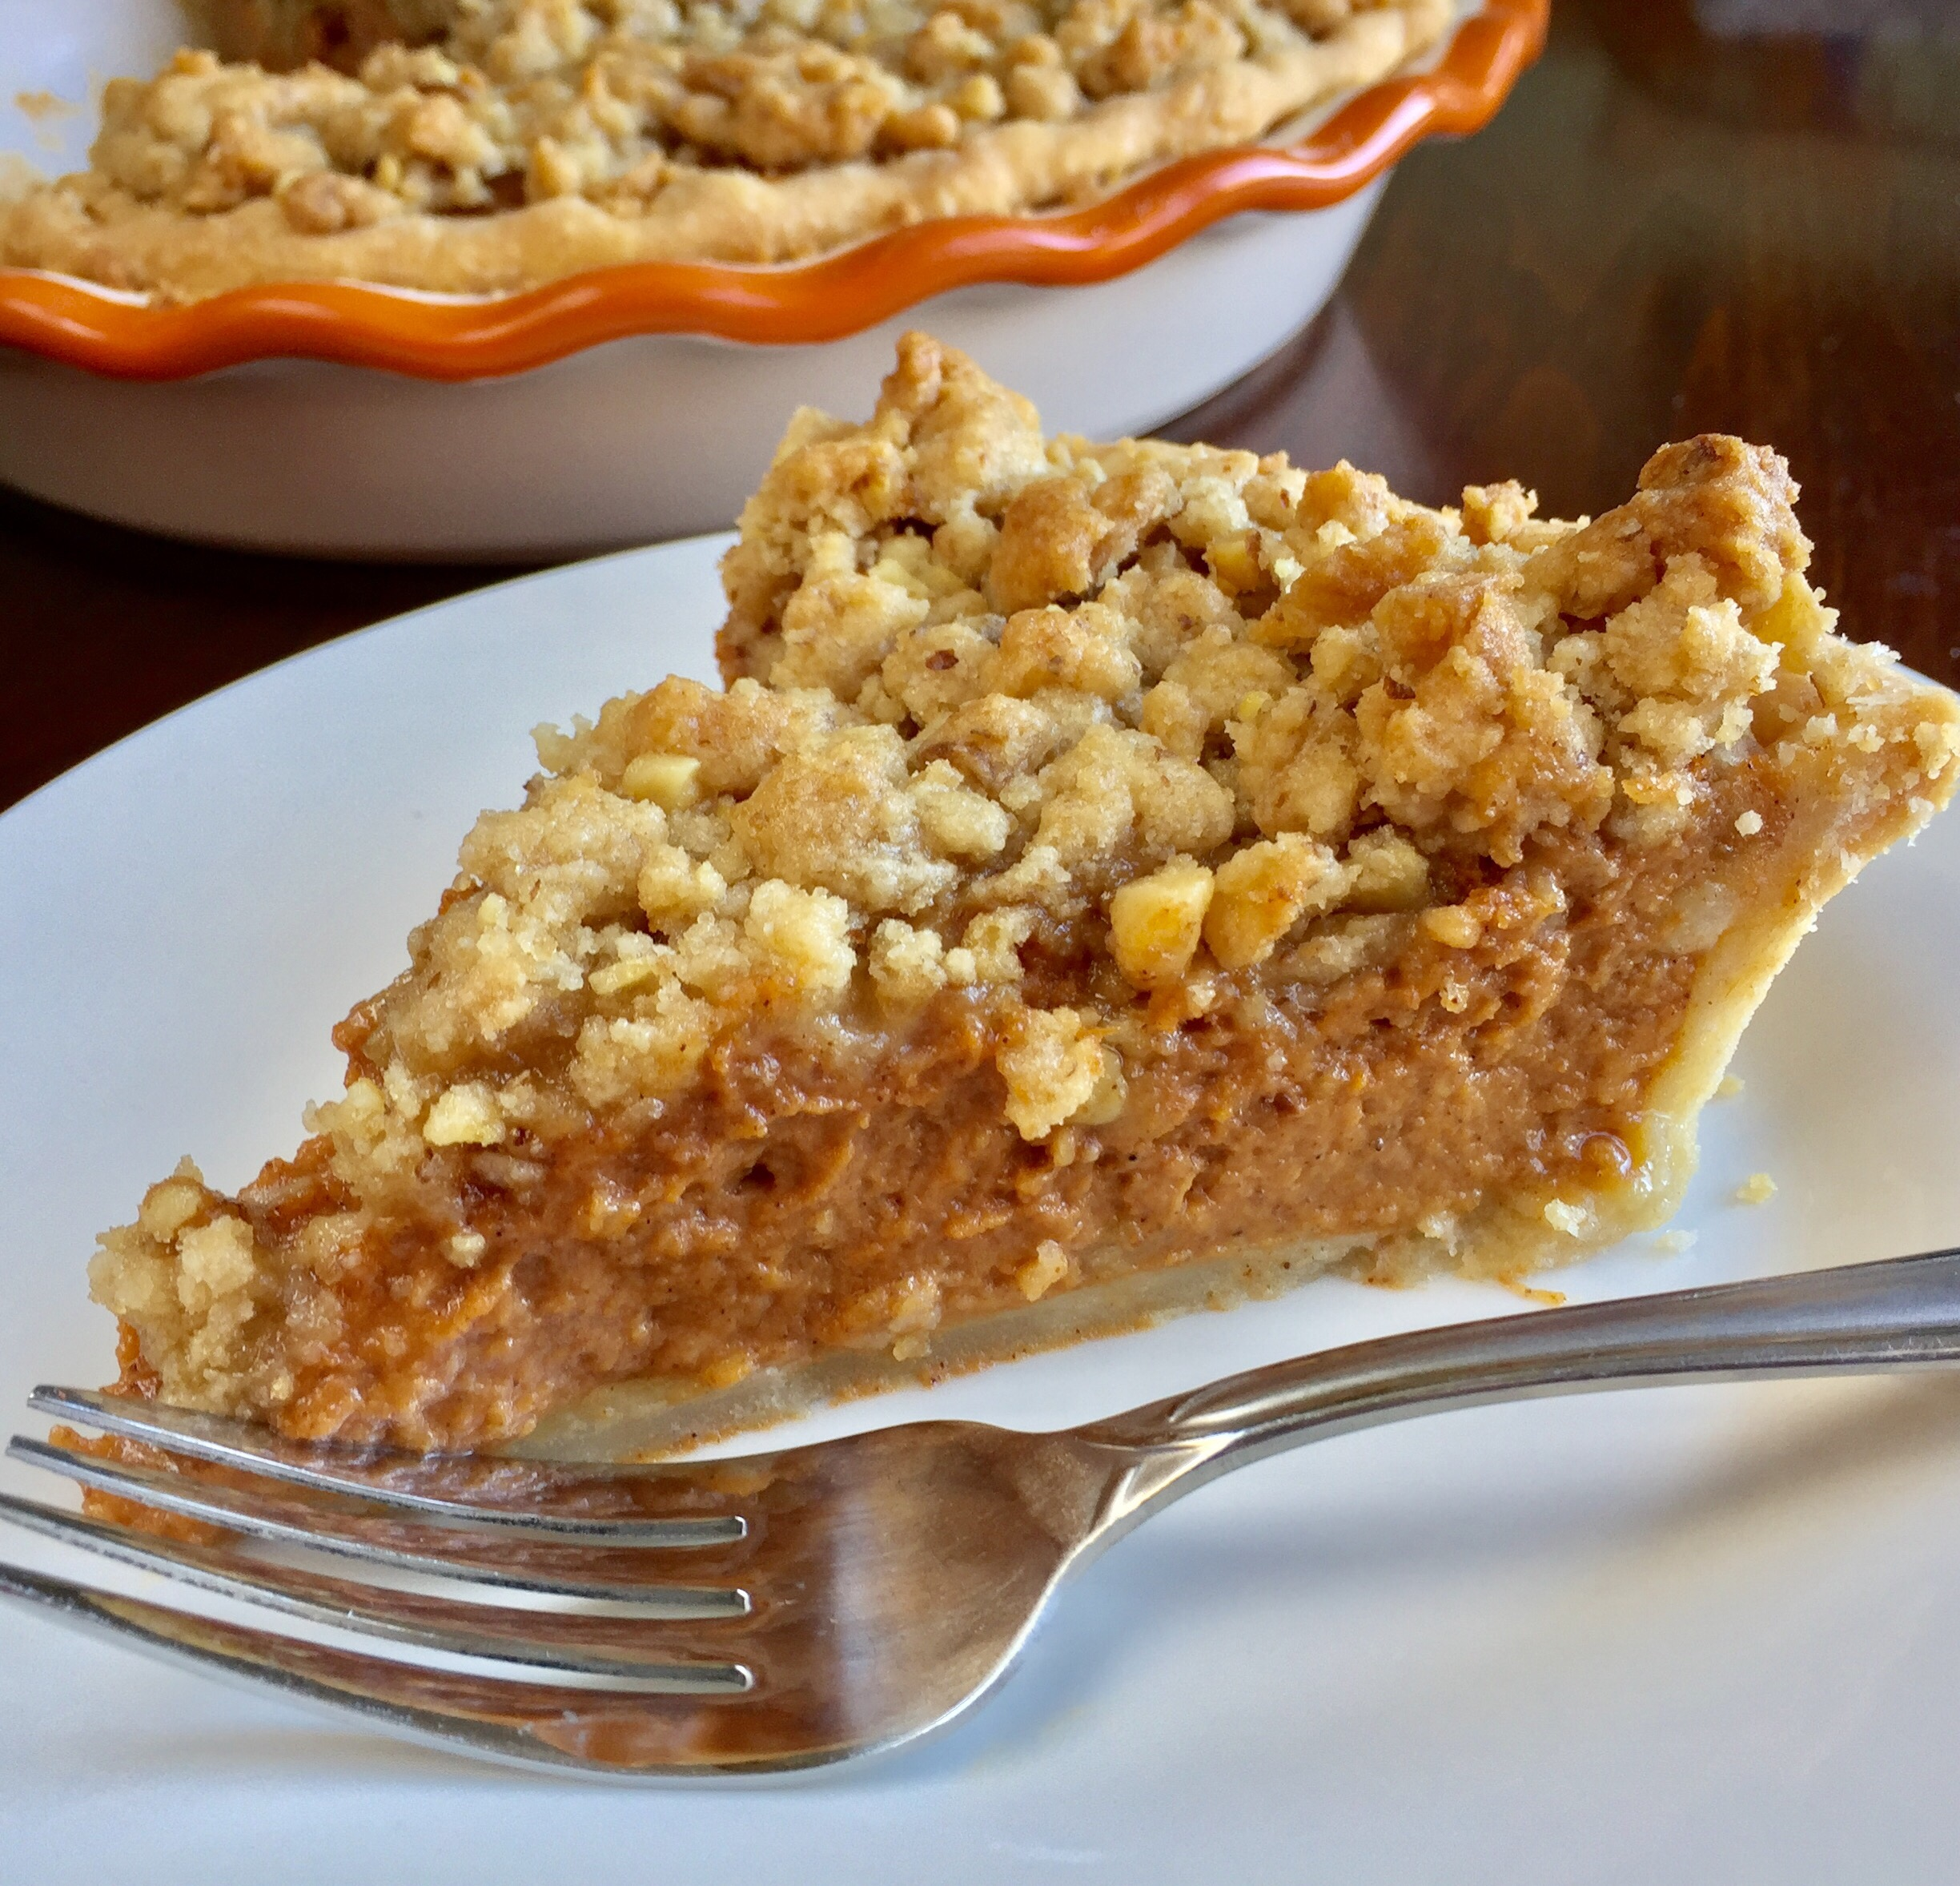 Ginger Streusel Pumpkin Pie